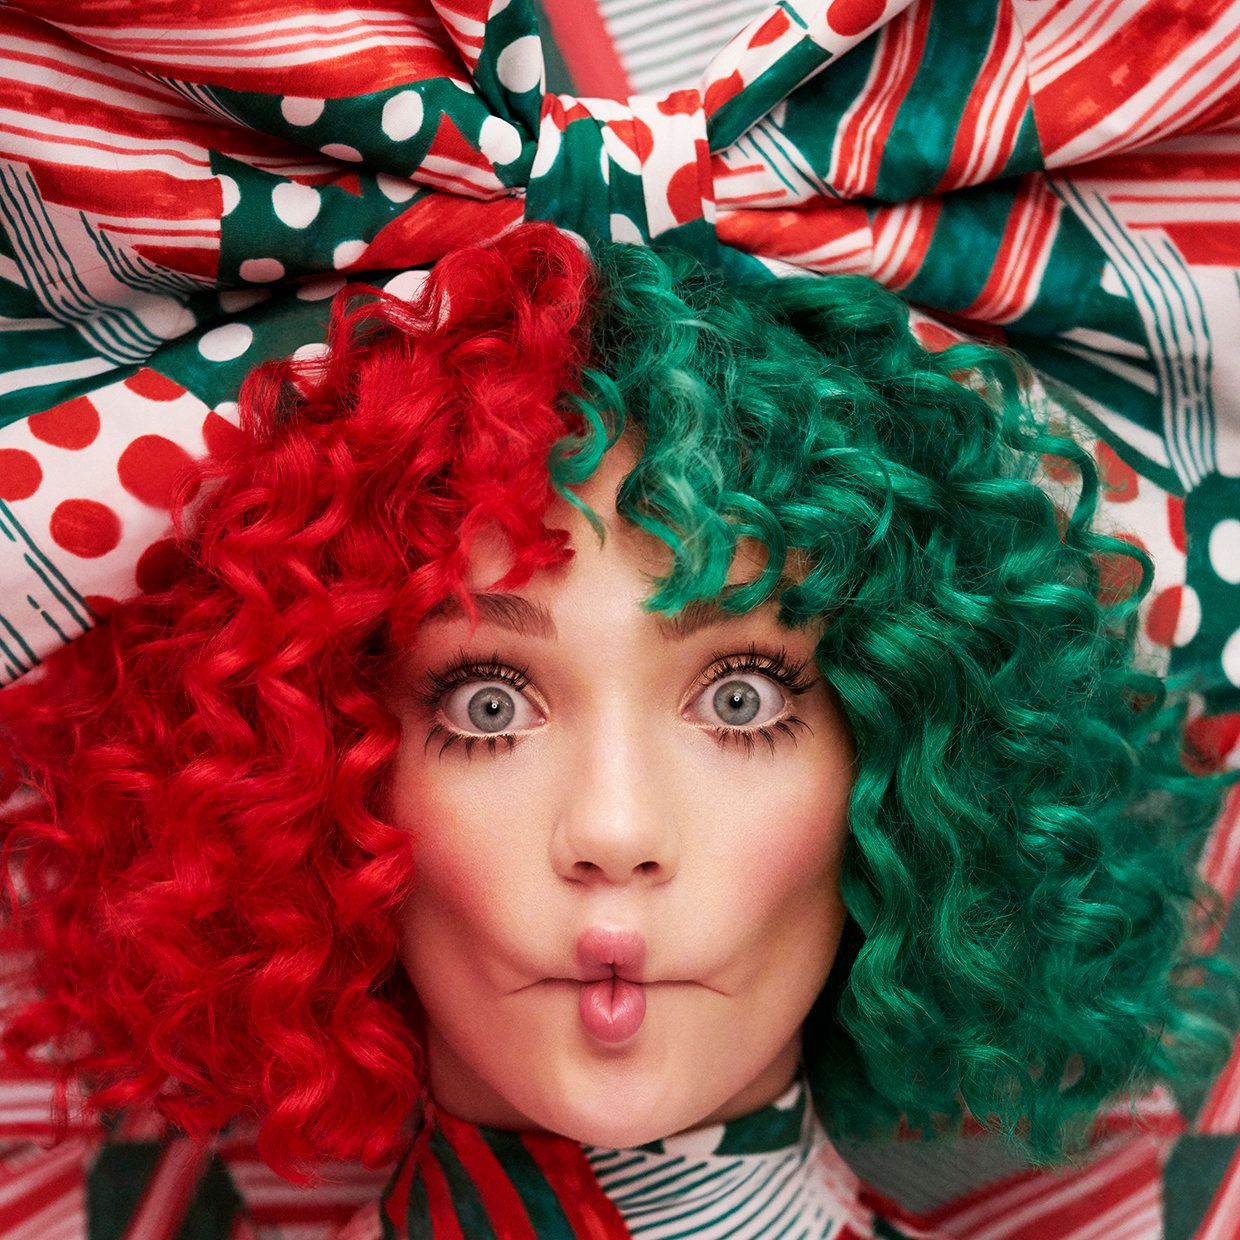 Frequent Sia collaborator Maddie Ziegler appears on the cover of Sia's holiday album,